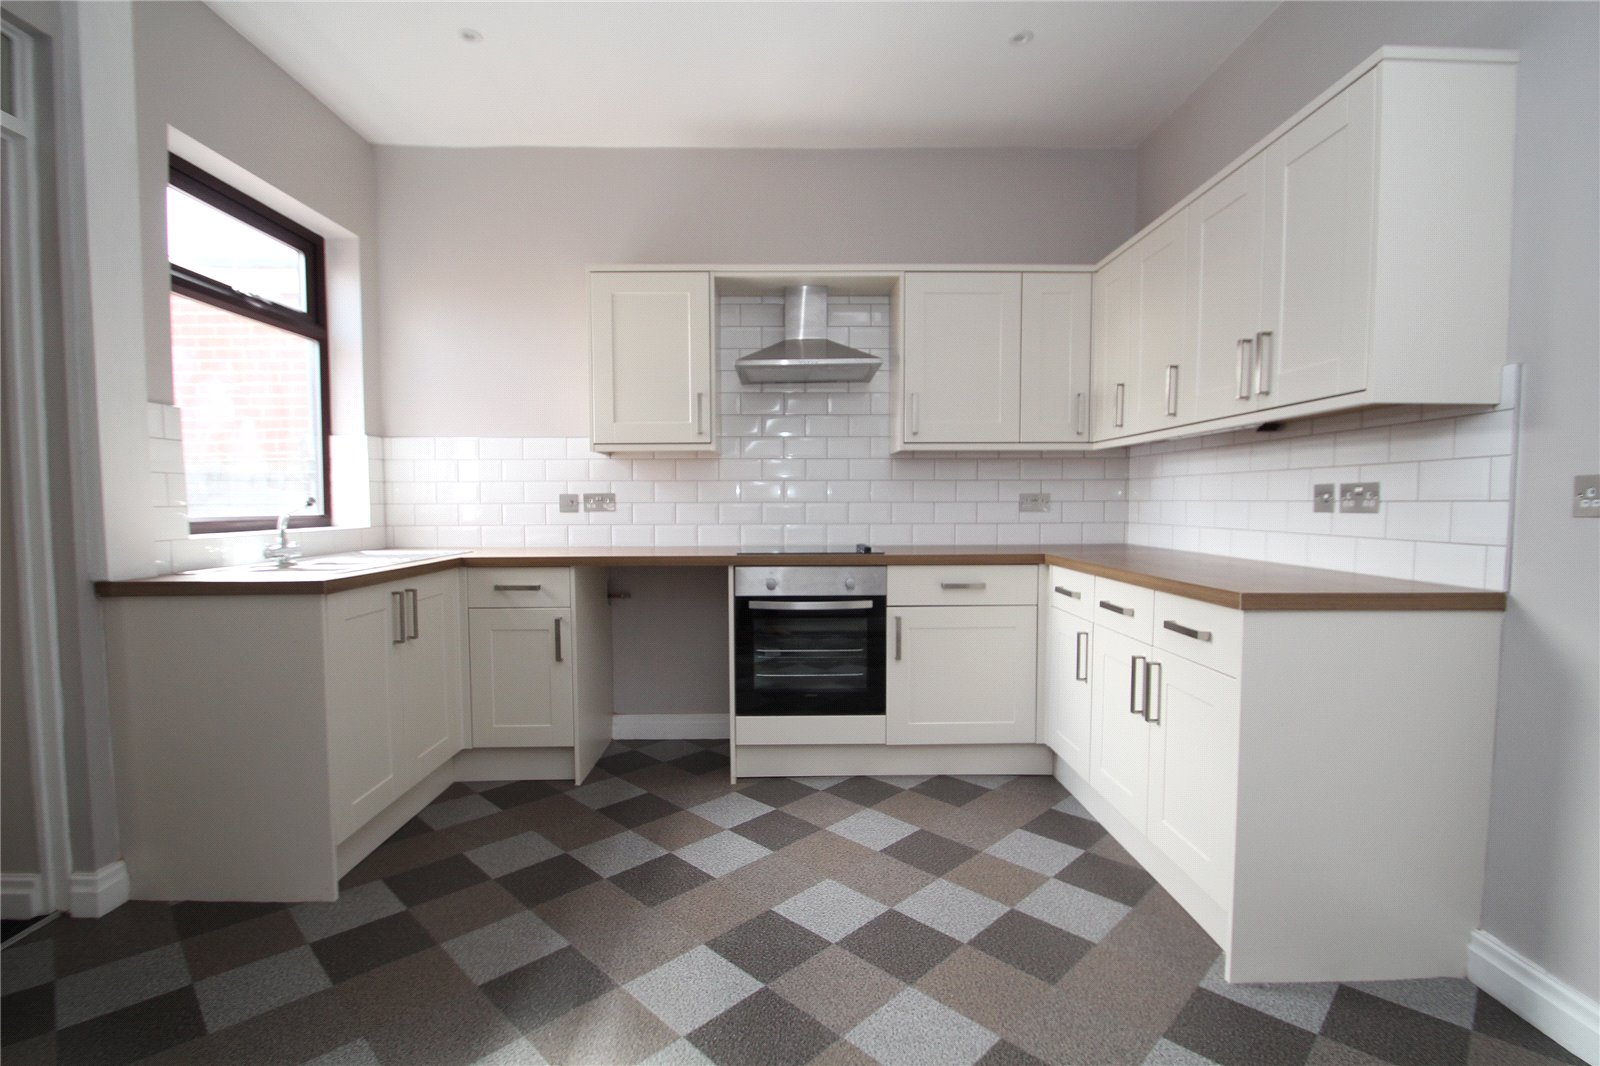 Whitegates pontefract 2 bedroom house for sale in blundell for Perfect kitchen pontefract